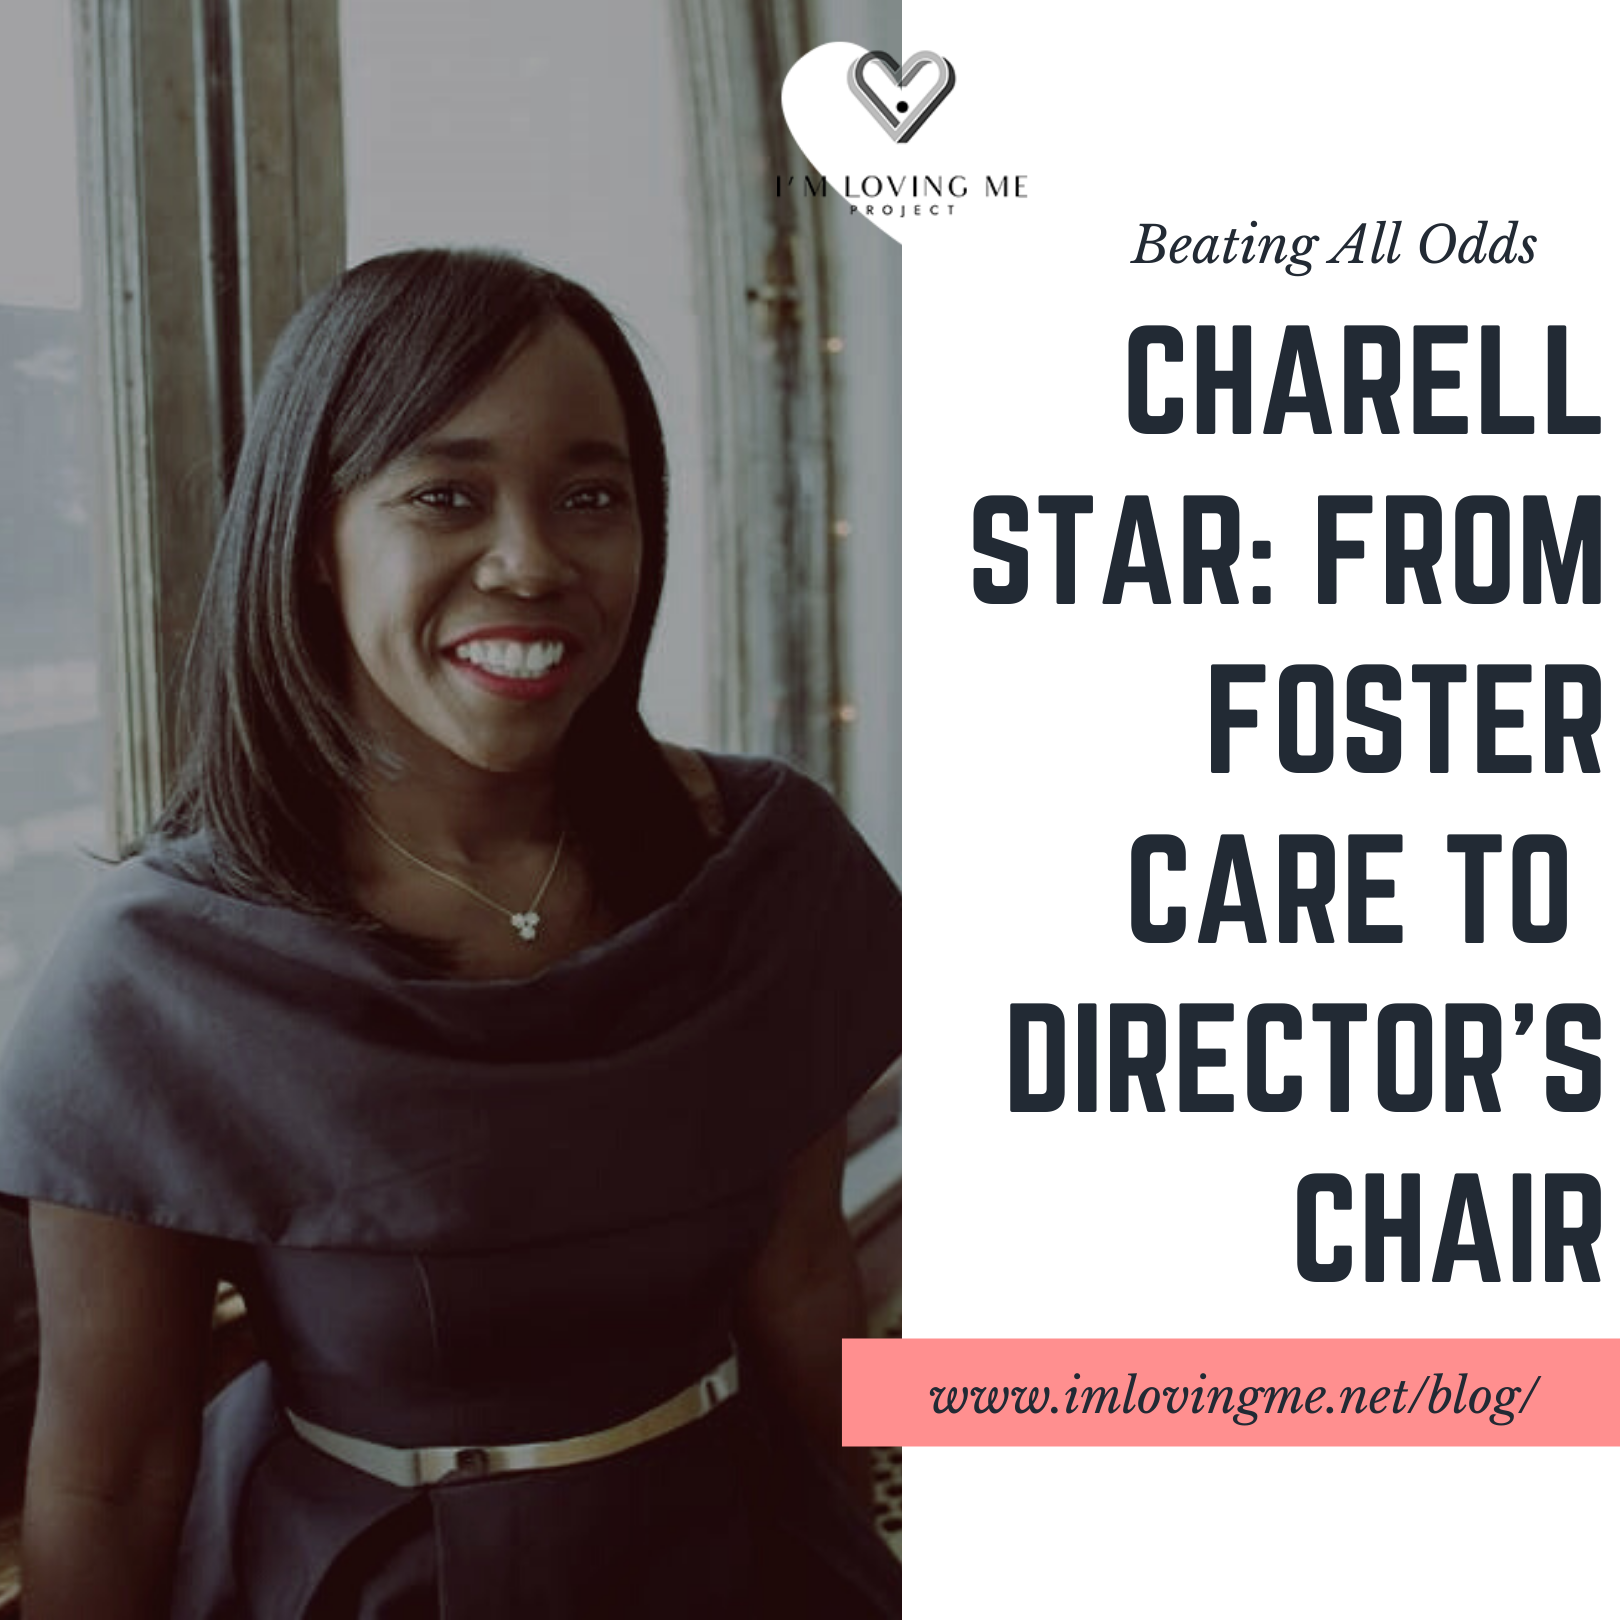 From Foster Care to the Director's Chair: Charell Star